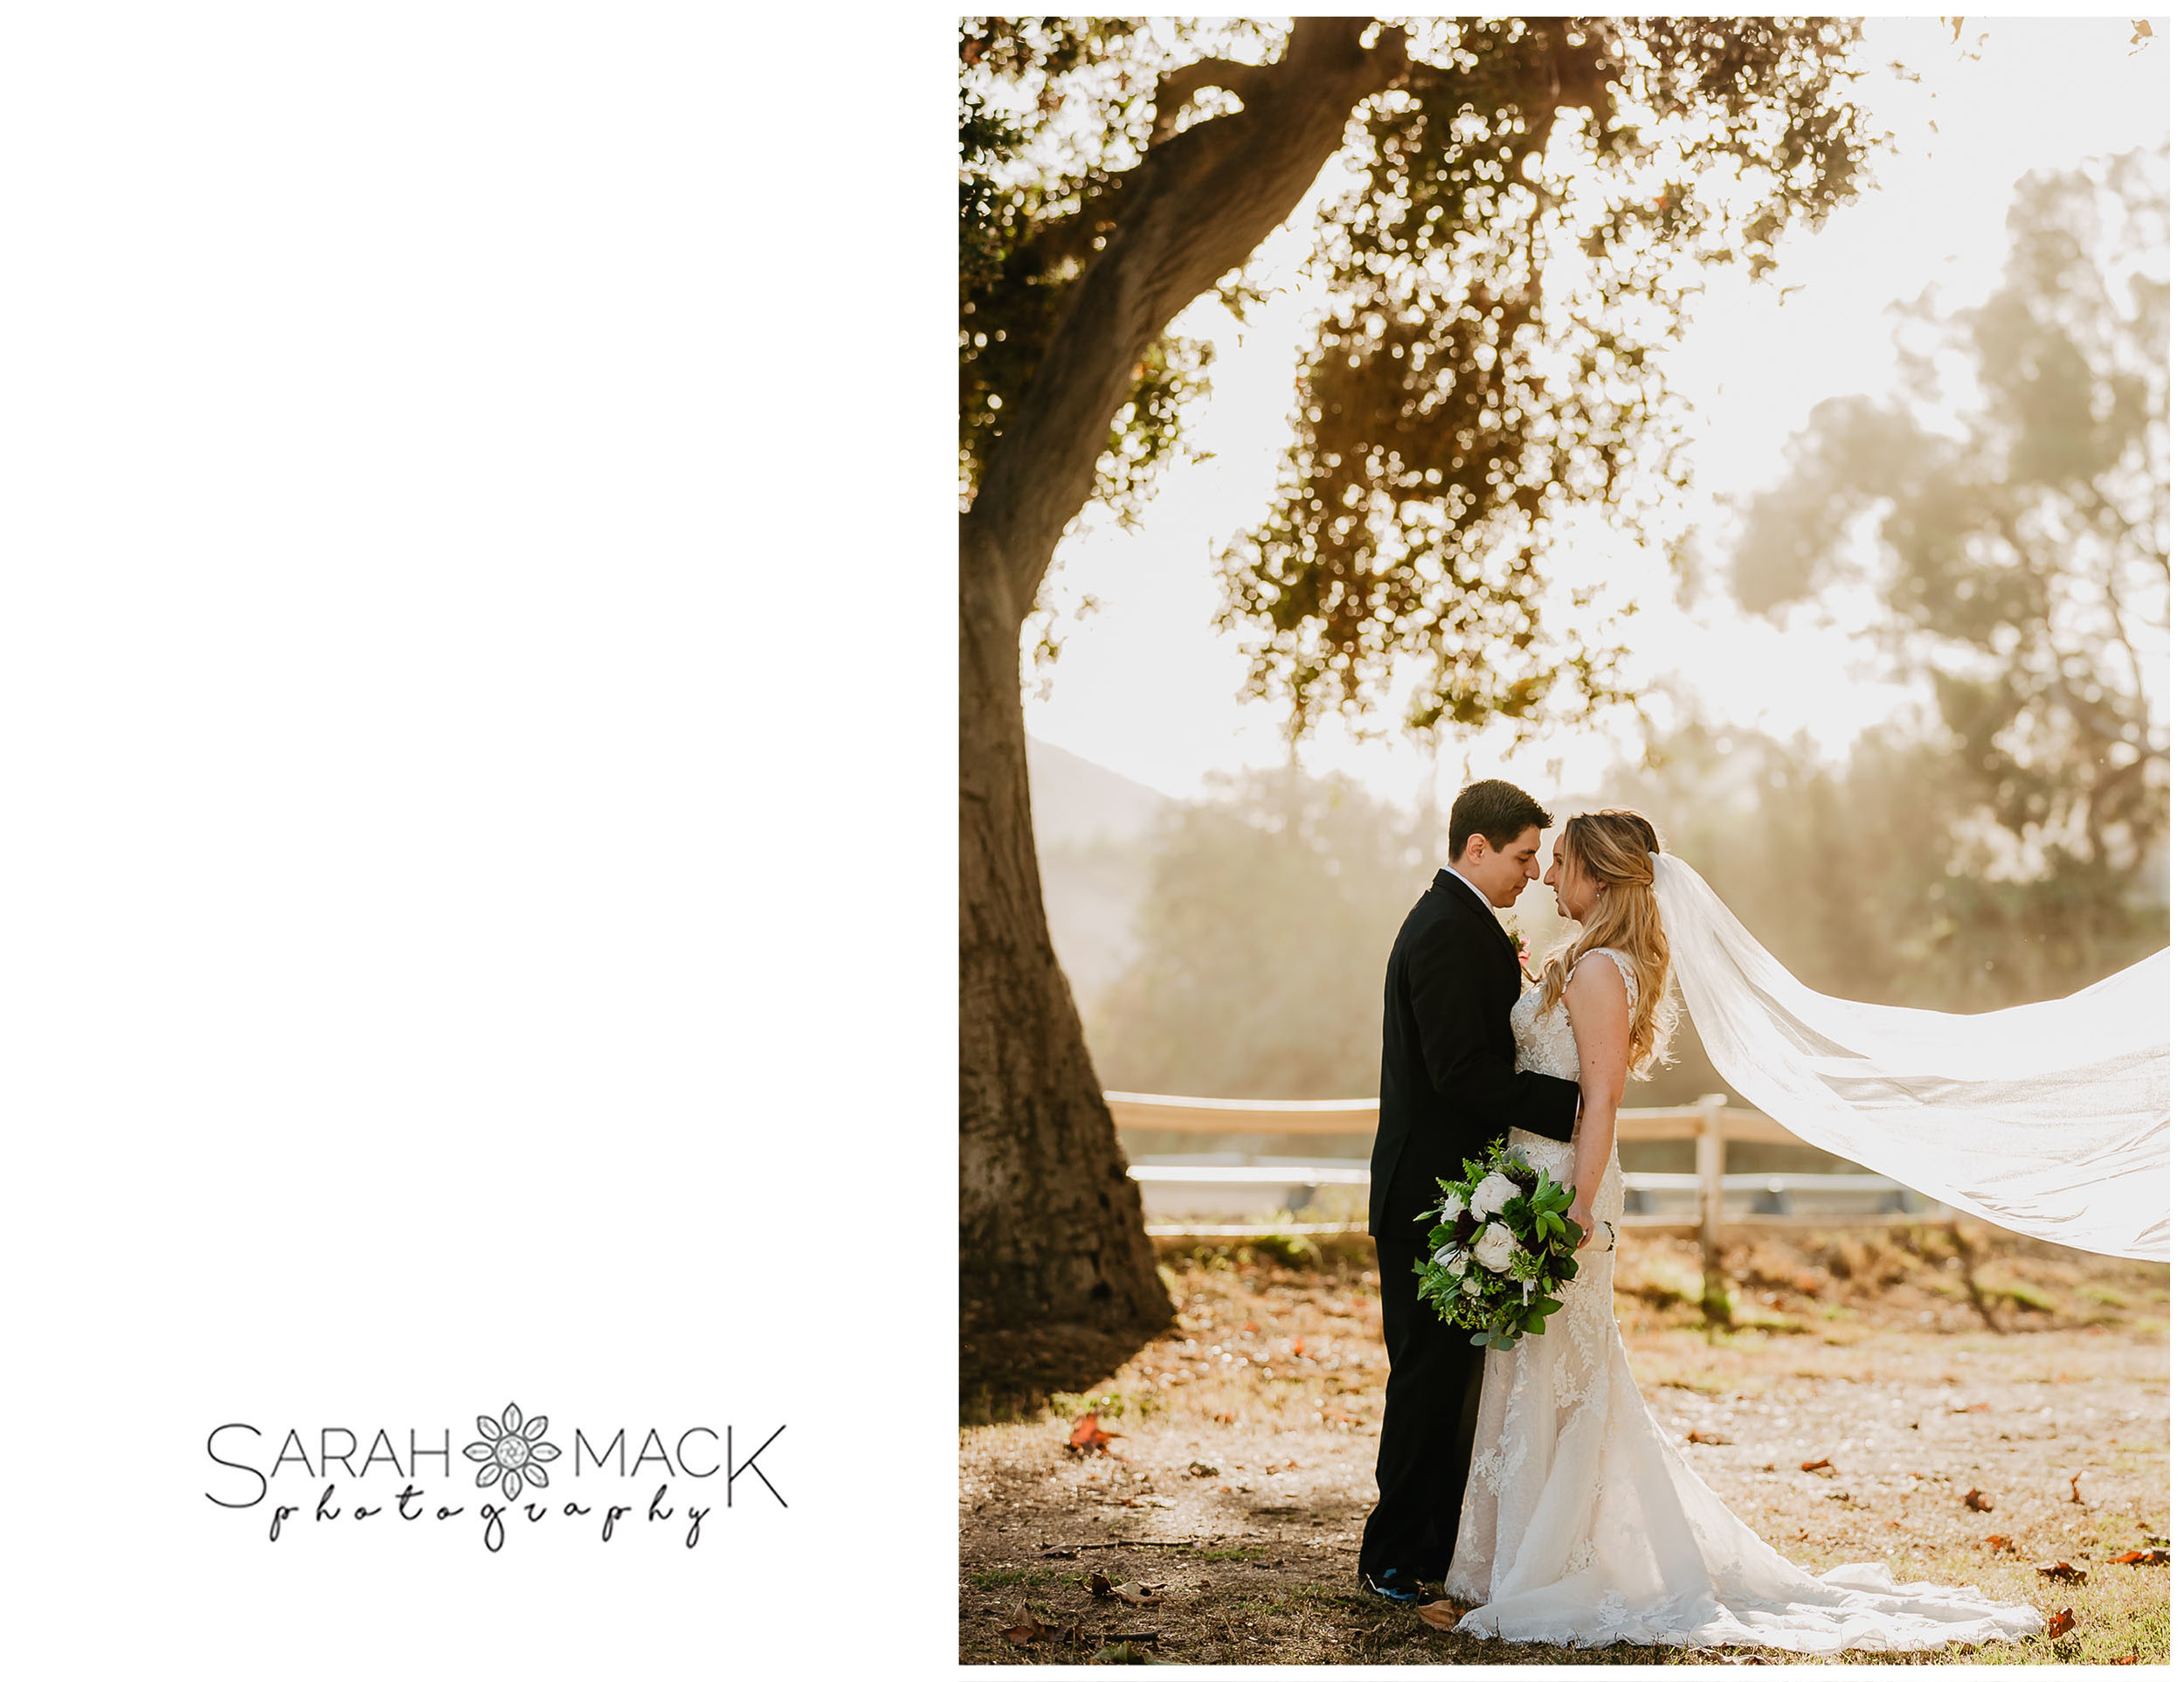 Calamigos Equestrian Wedding, Sarah Mack Photo